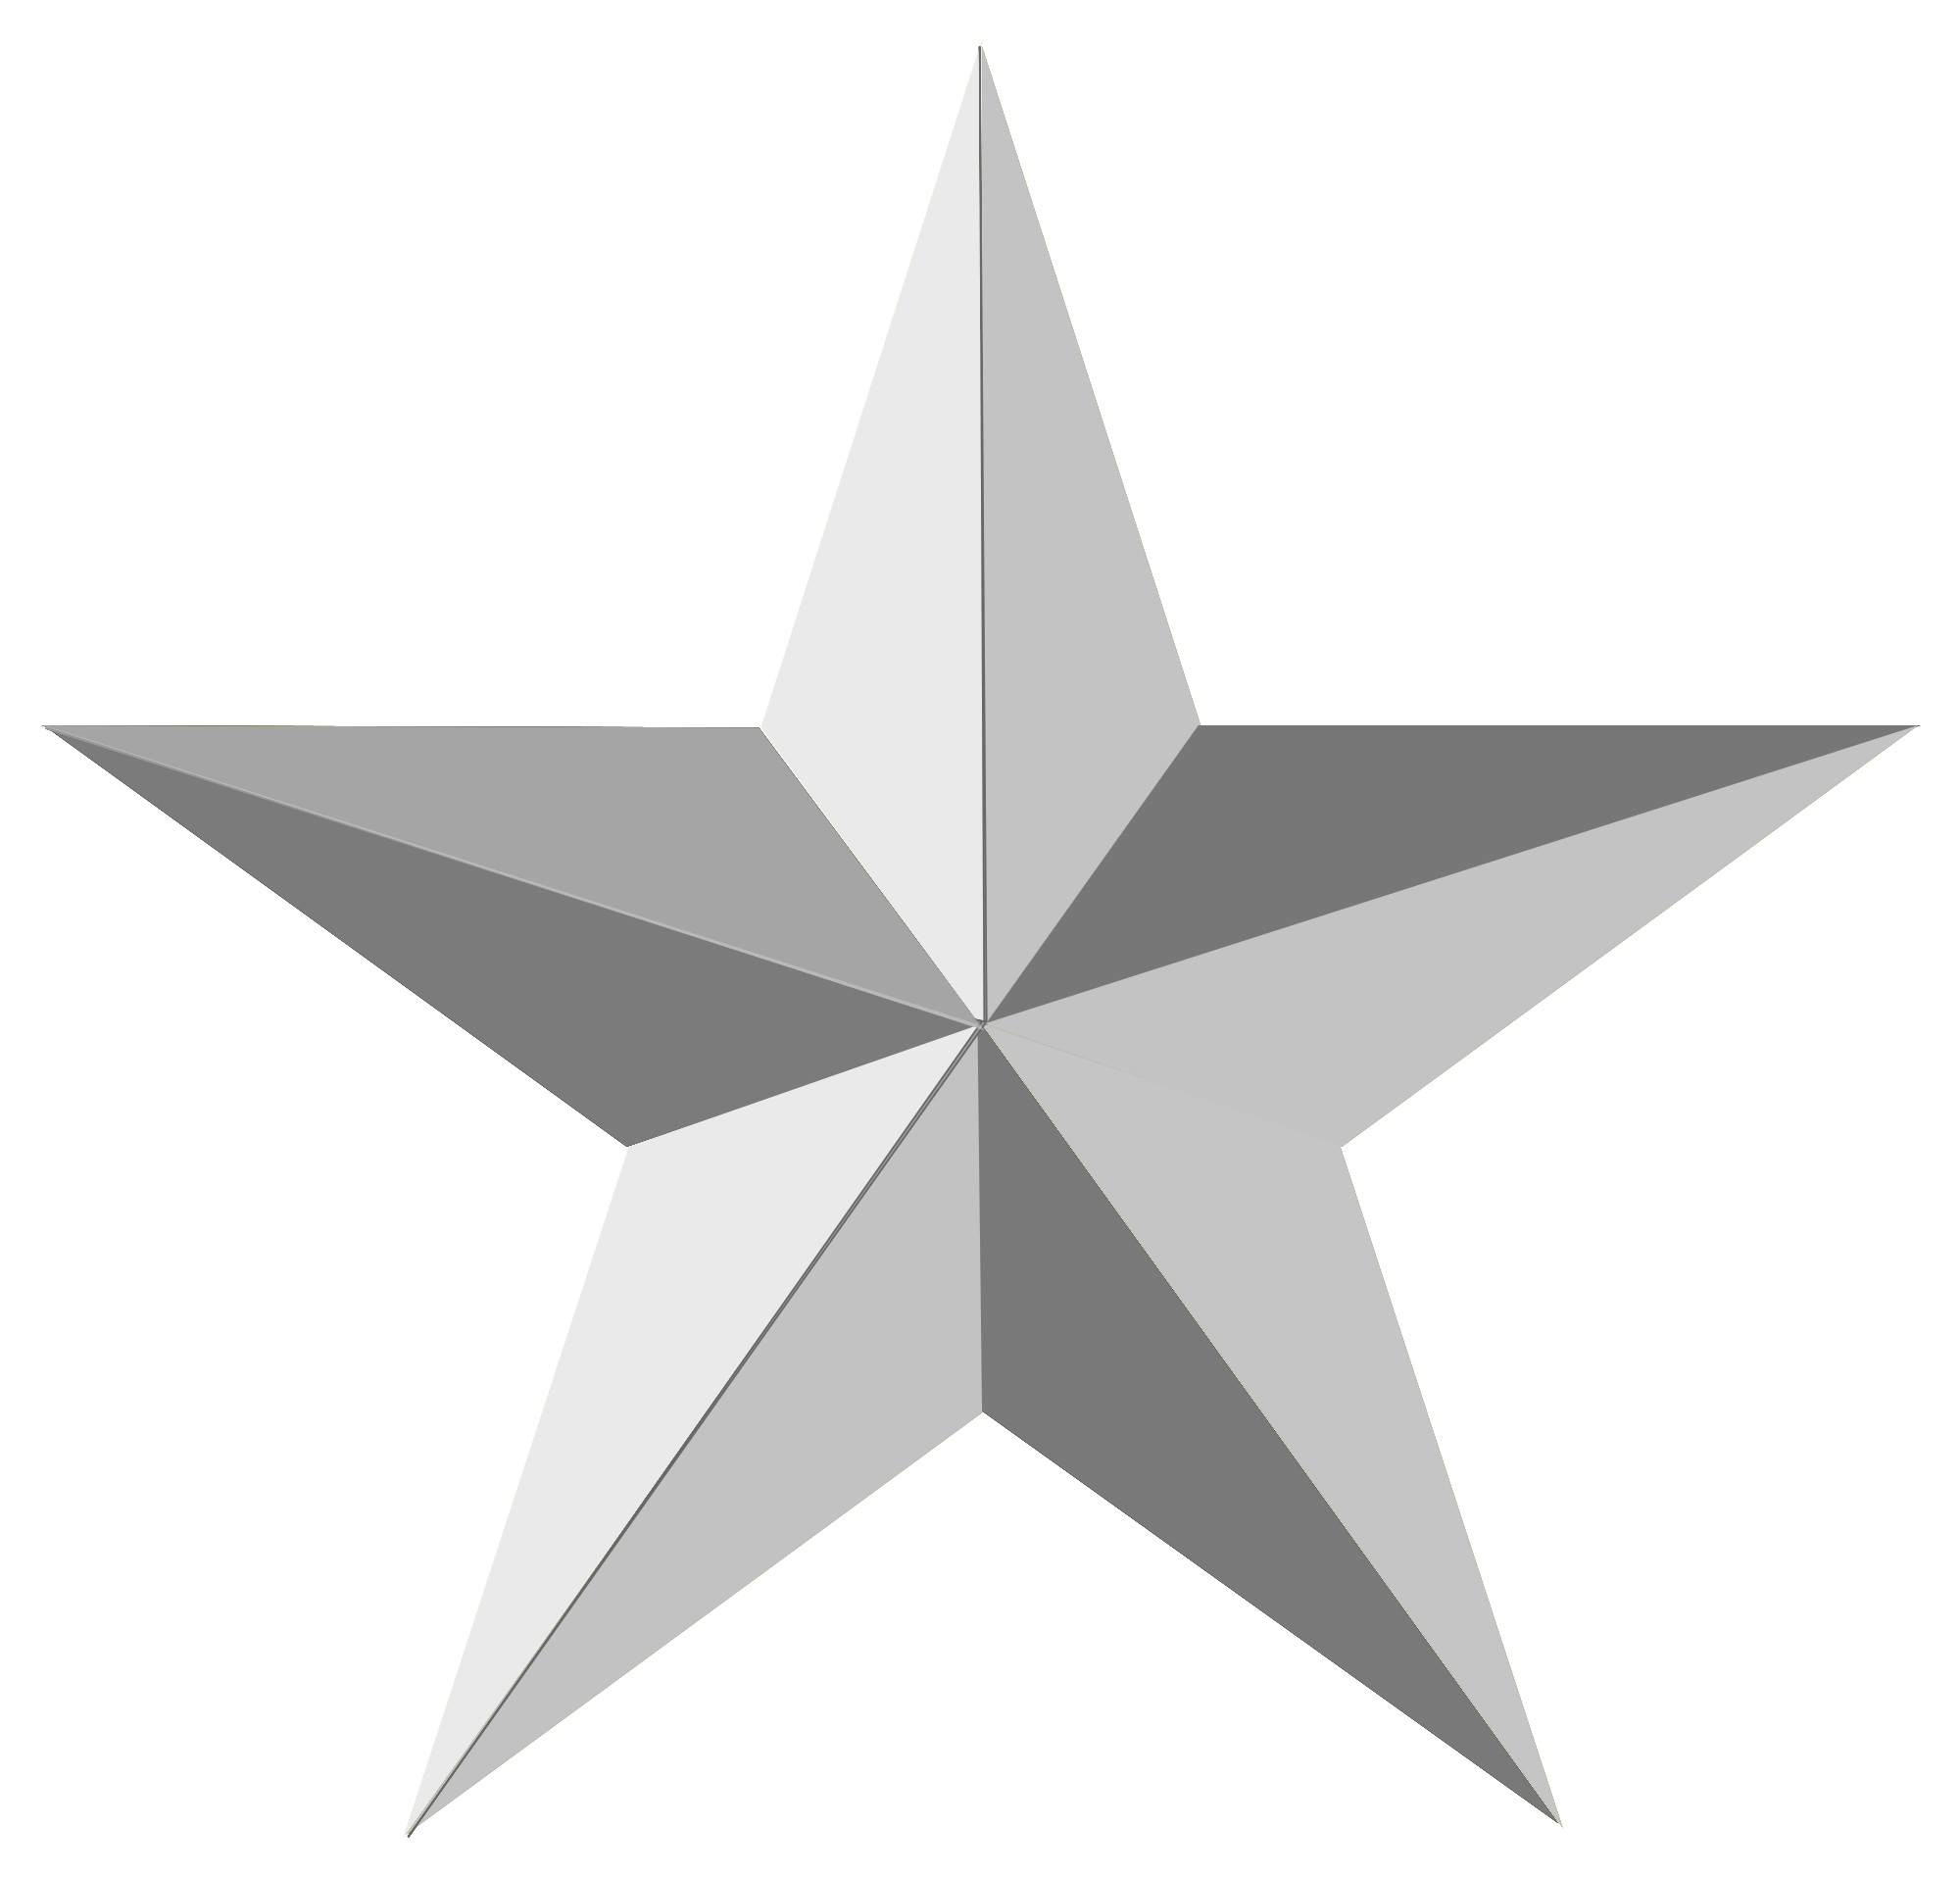 White star png. Transparent images all